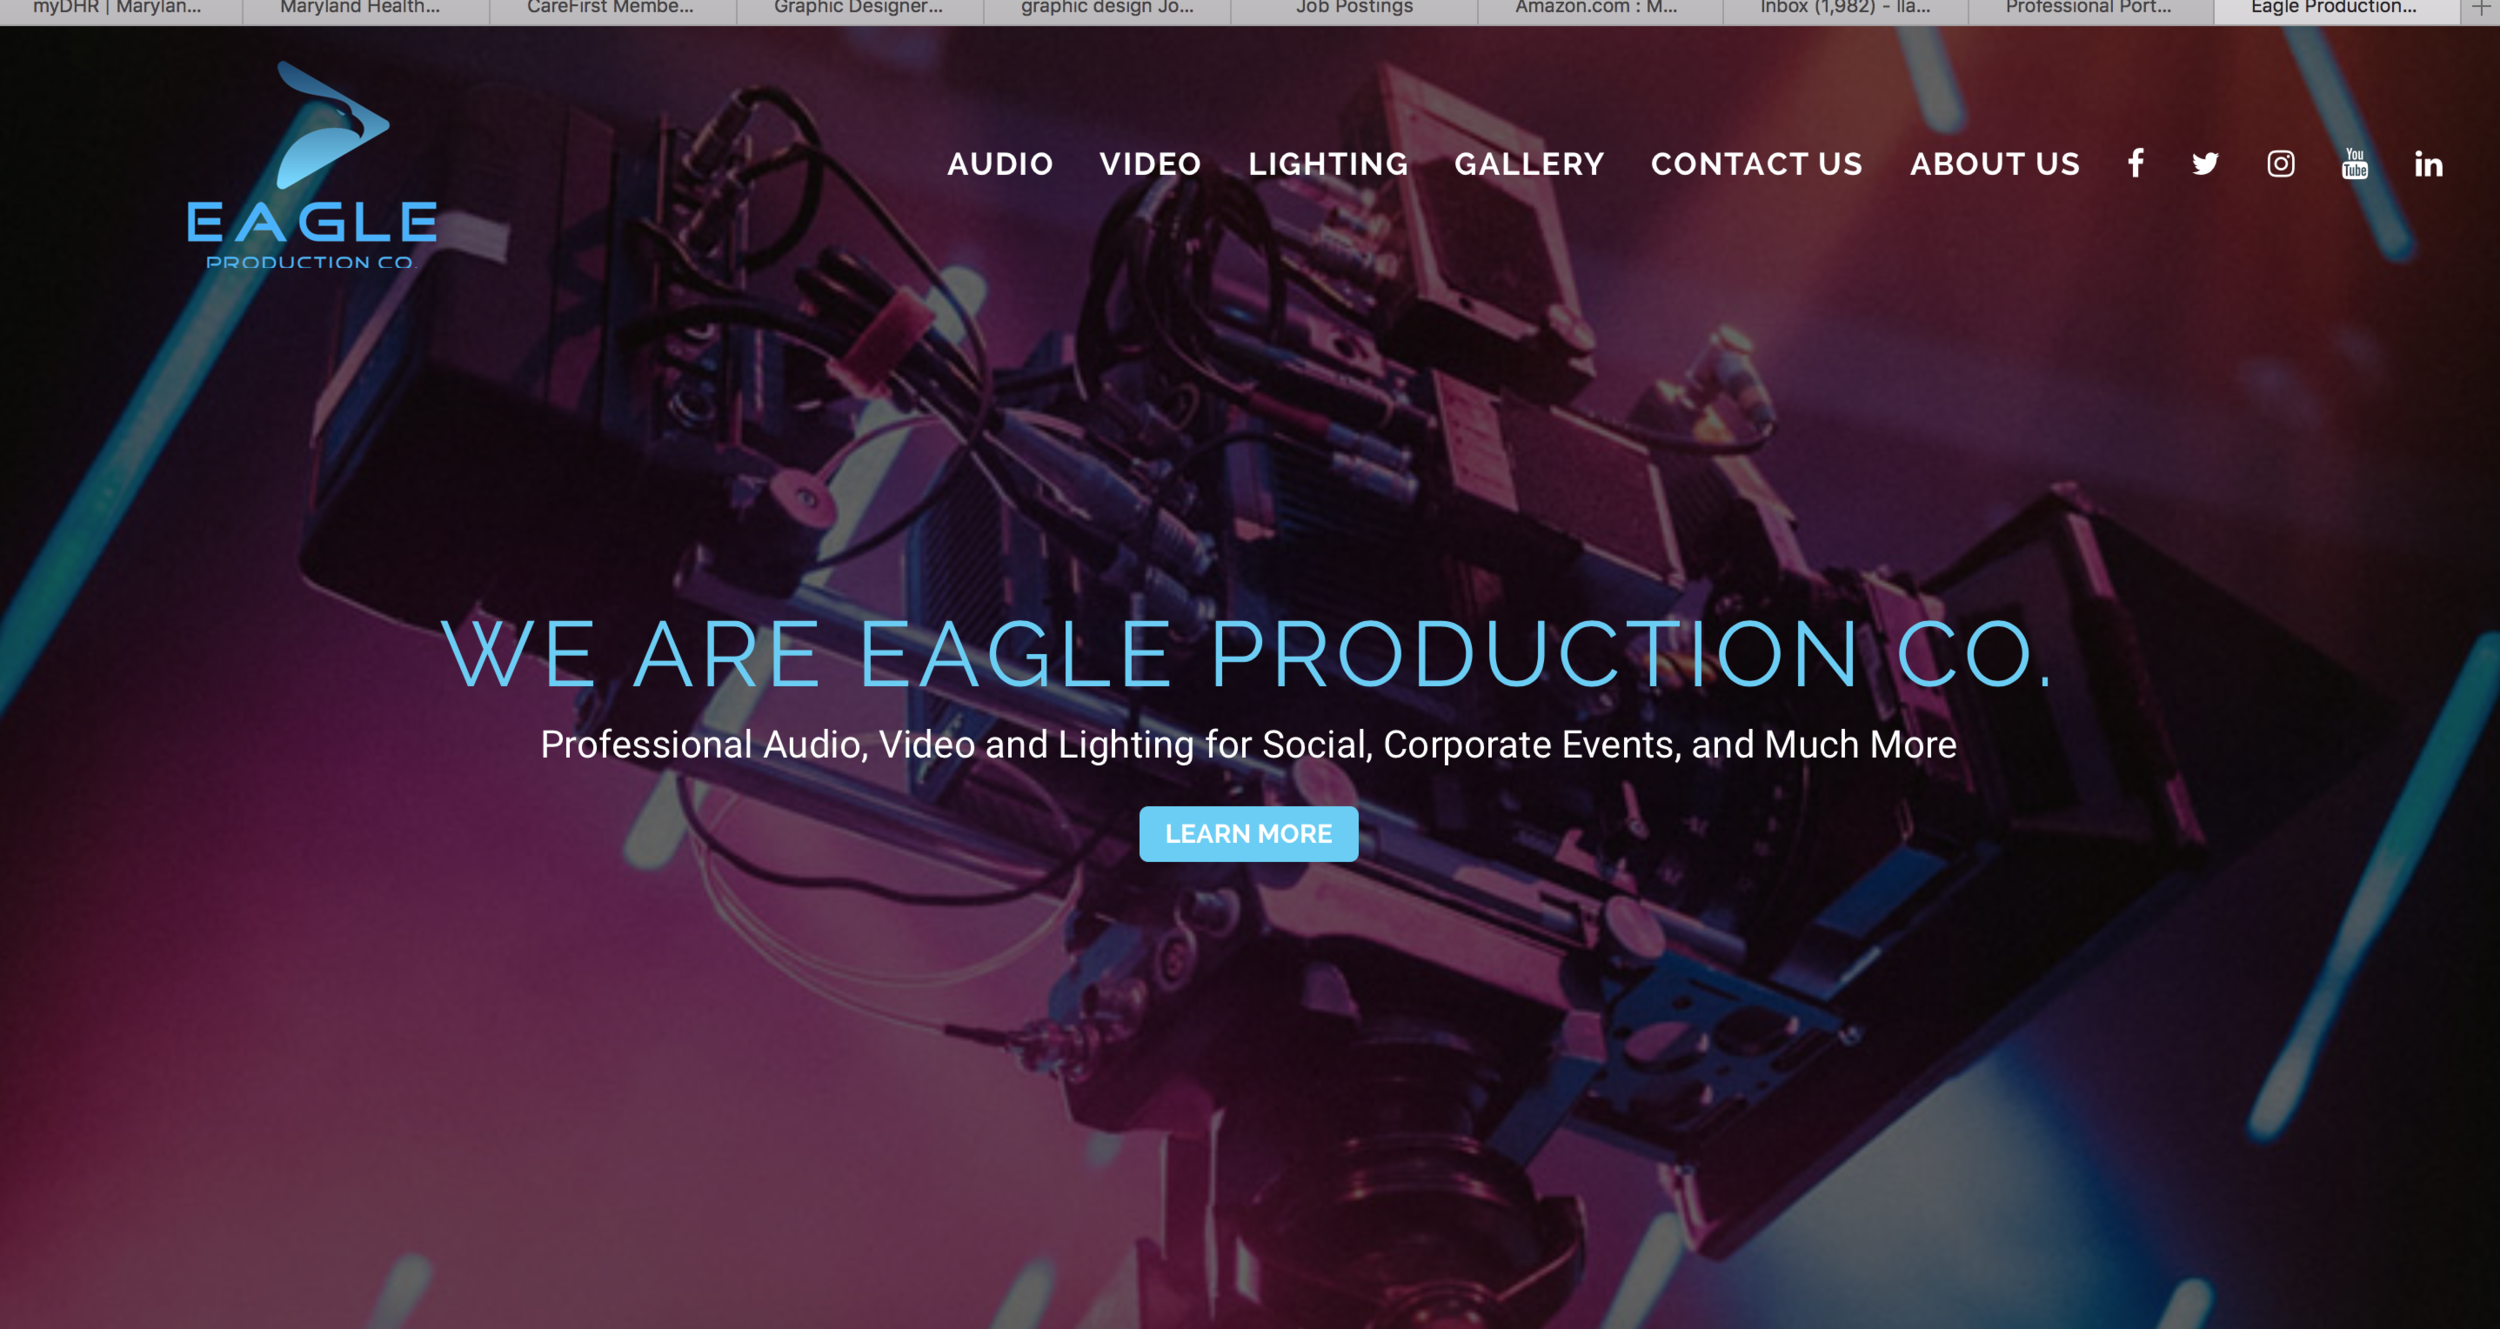 EAGLE PRODUCTION CO.